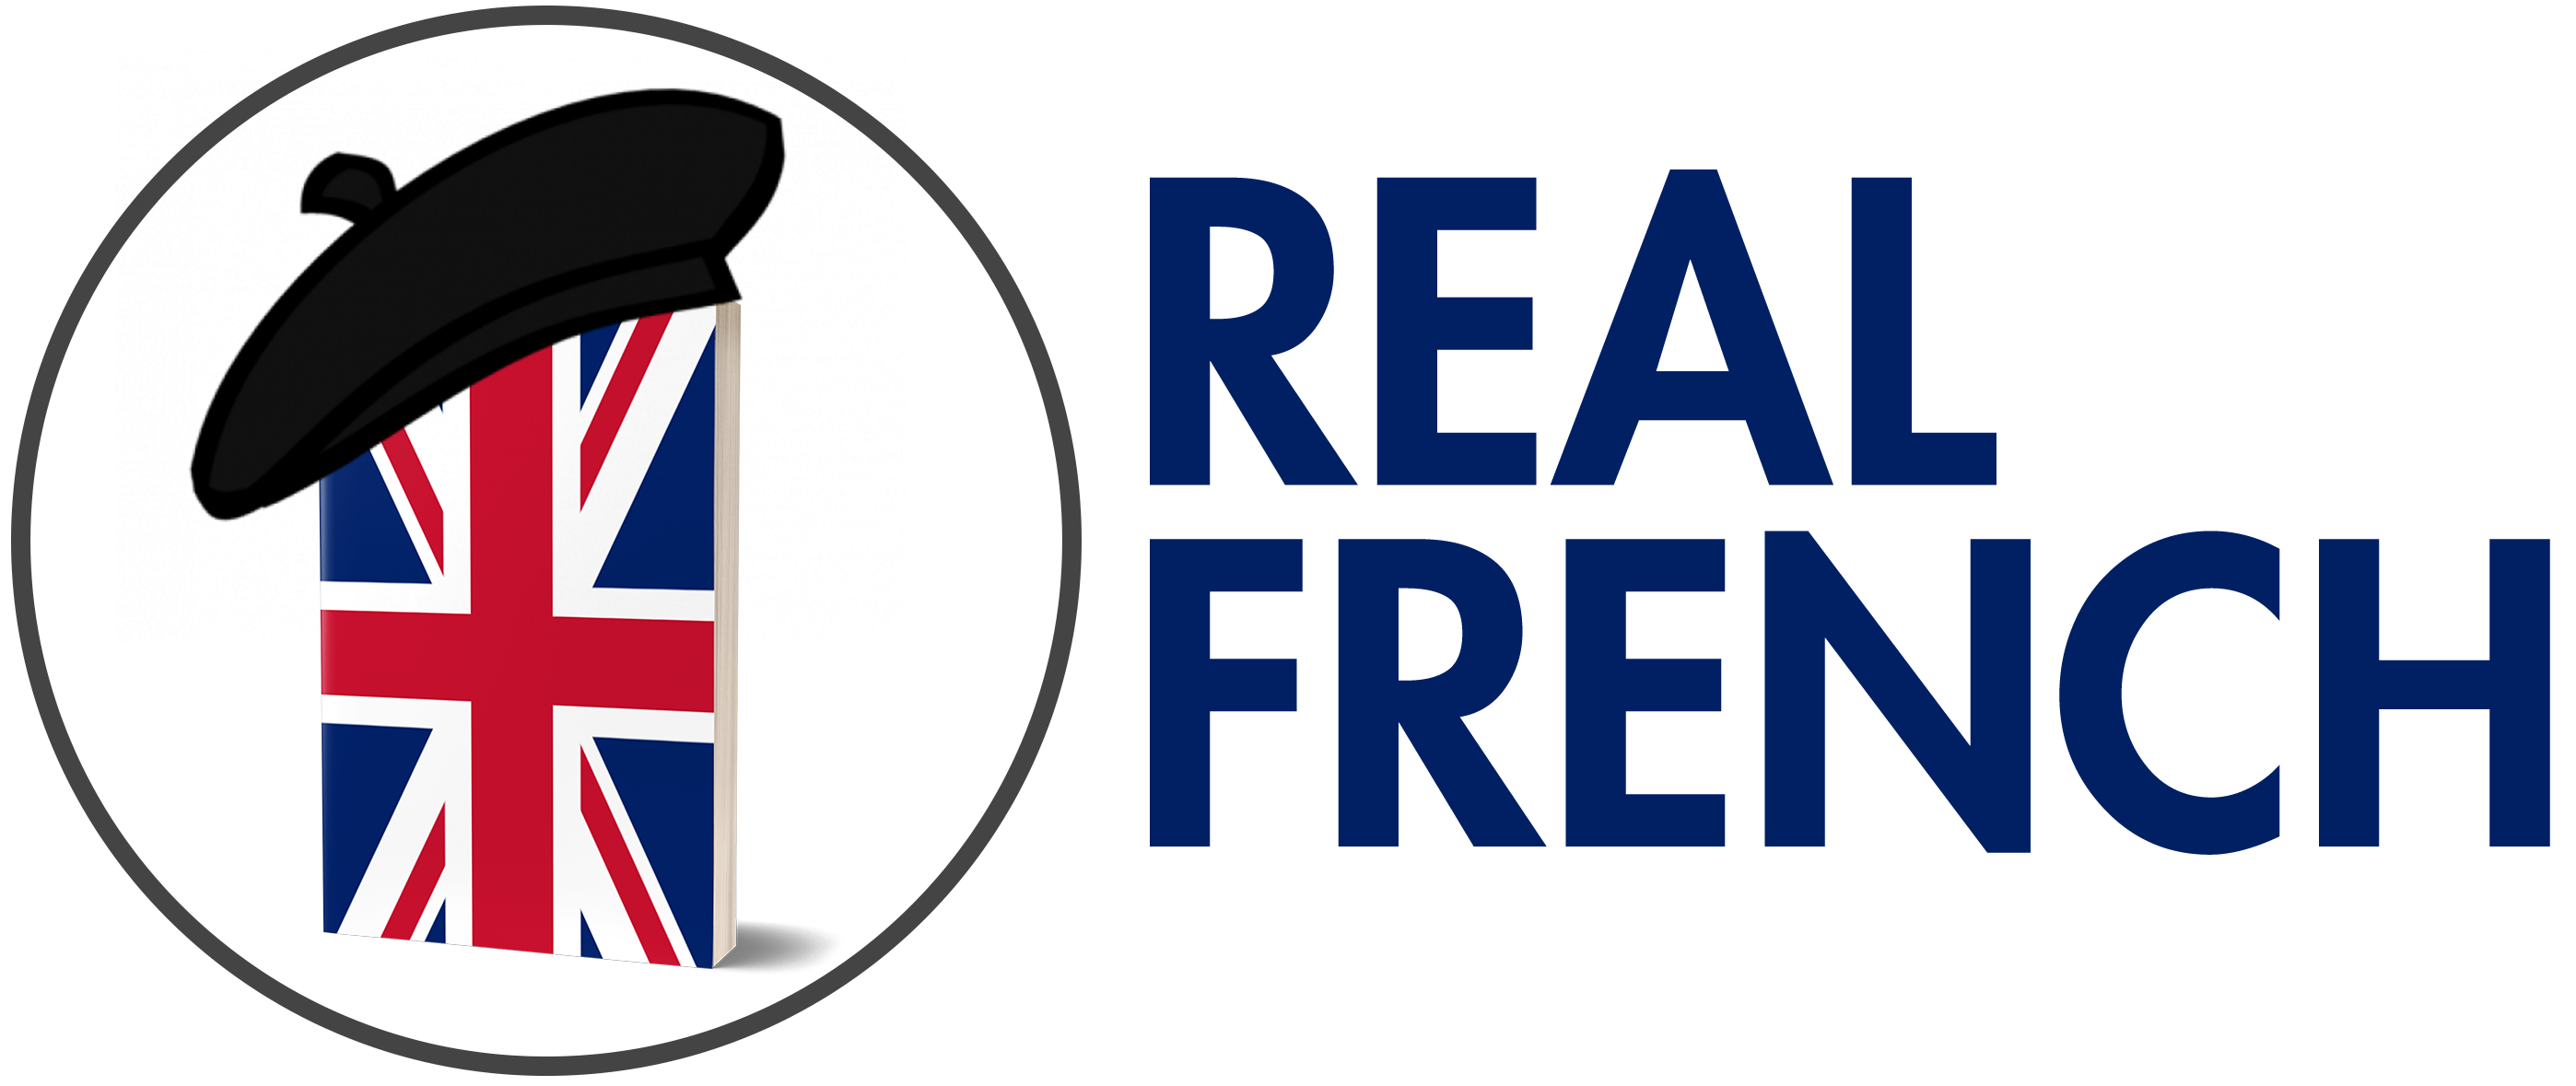 realfrench.net